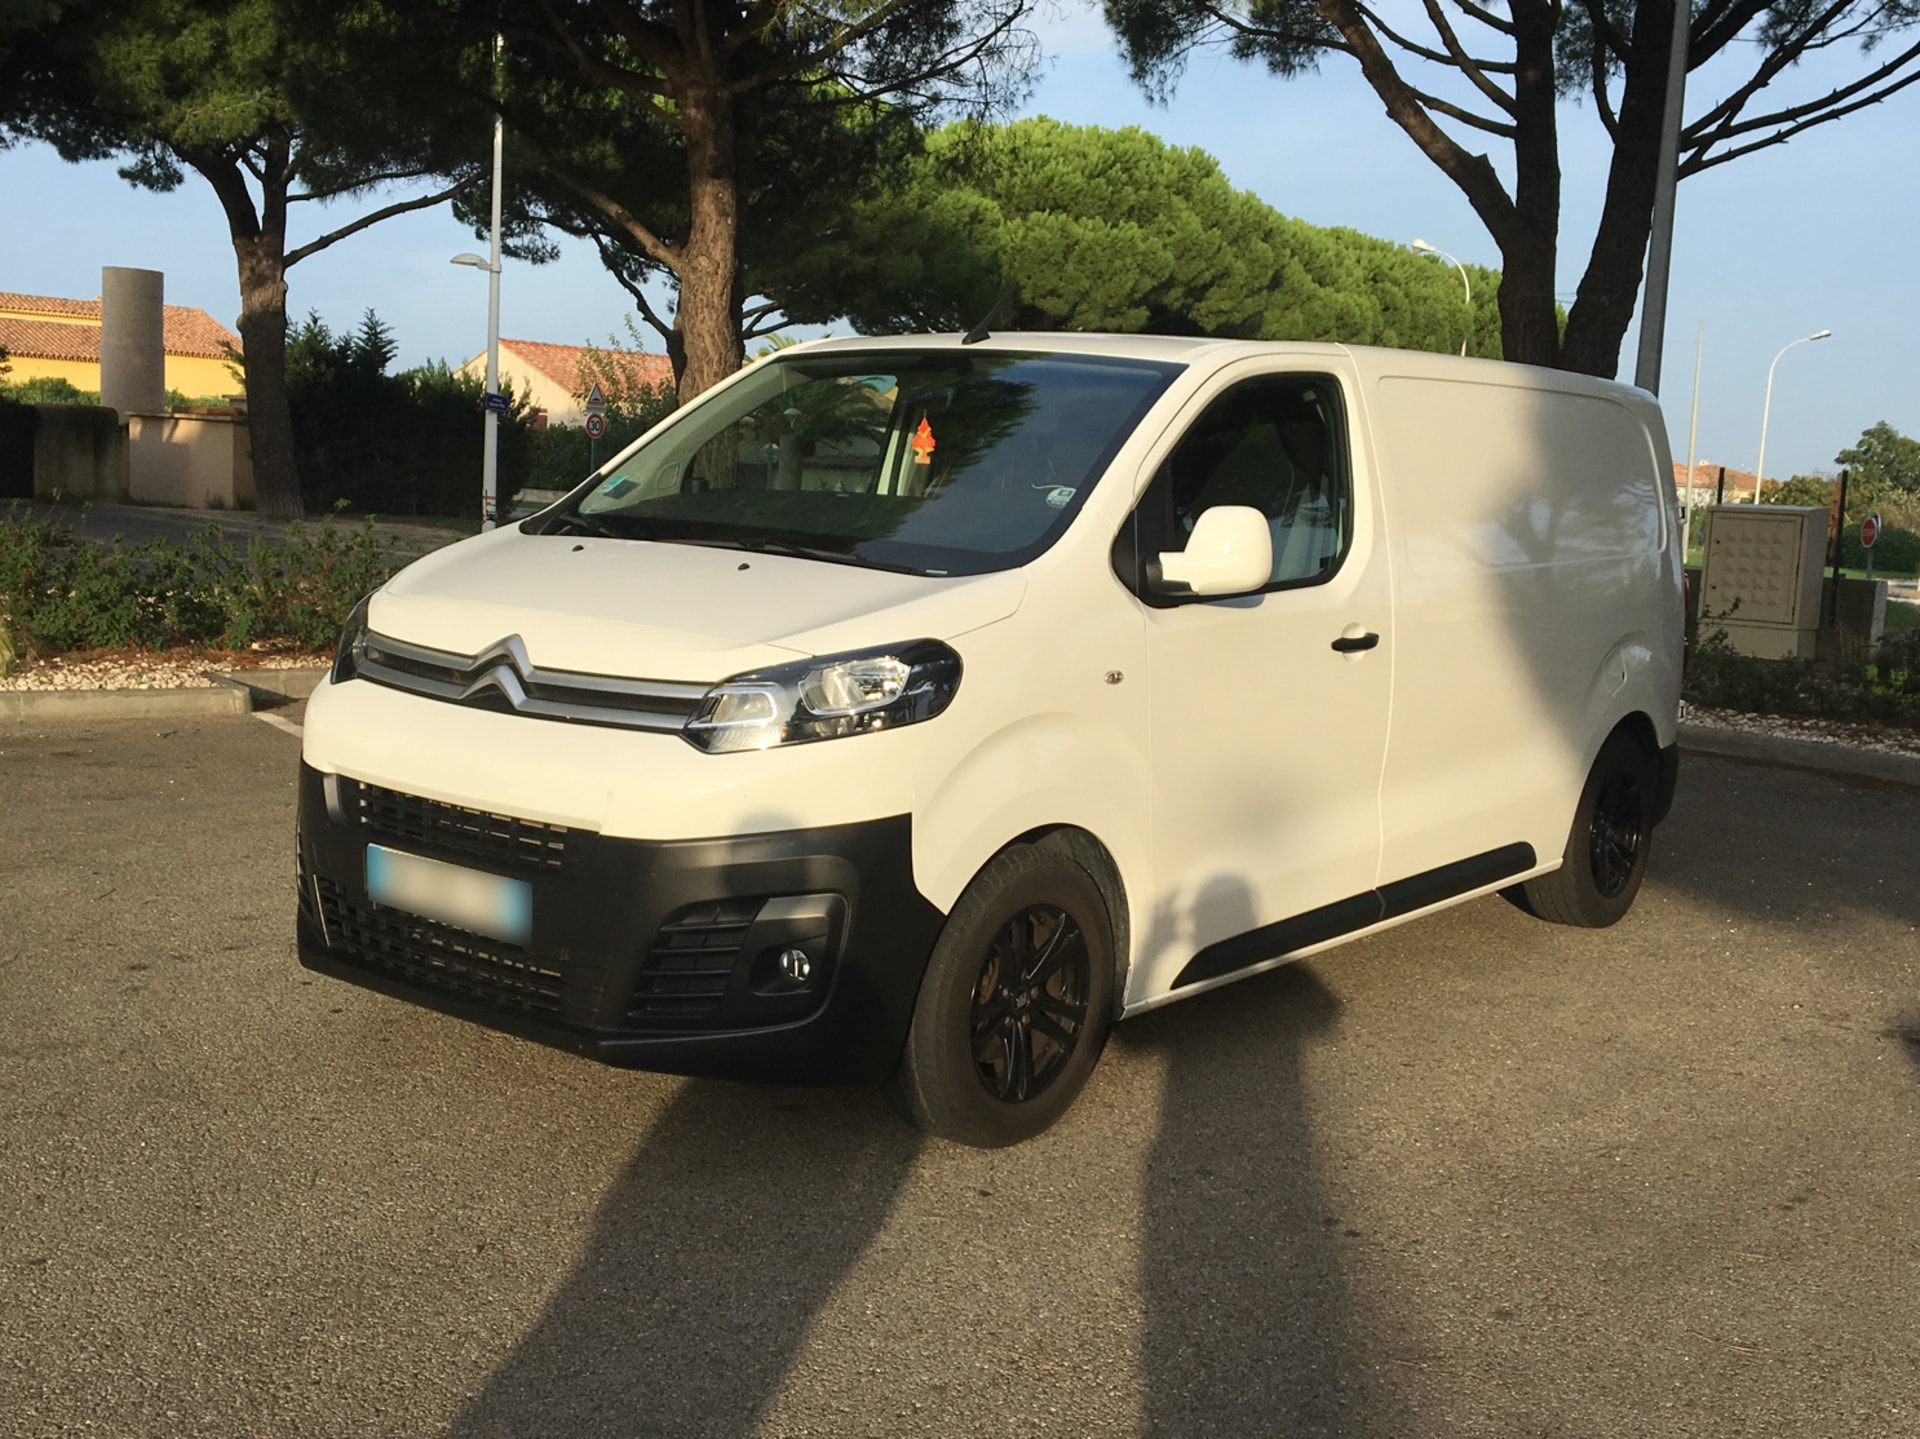 CITROEN JUMPY VU FOURGON 1.6 BLUEHDI 115 M BUSINESS START-STOP - Carverntura